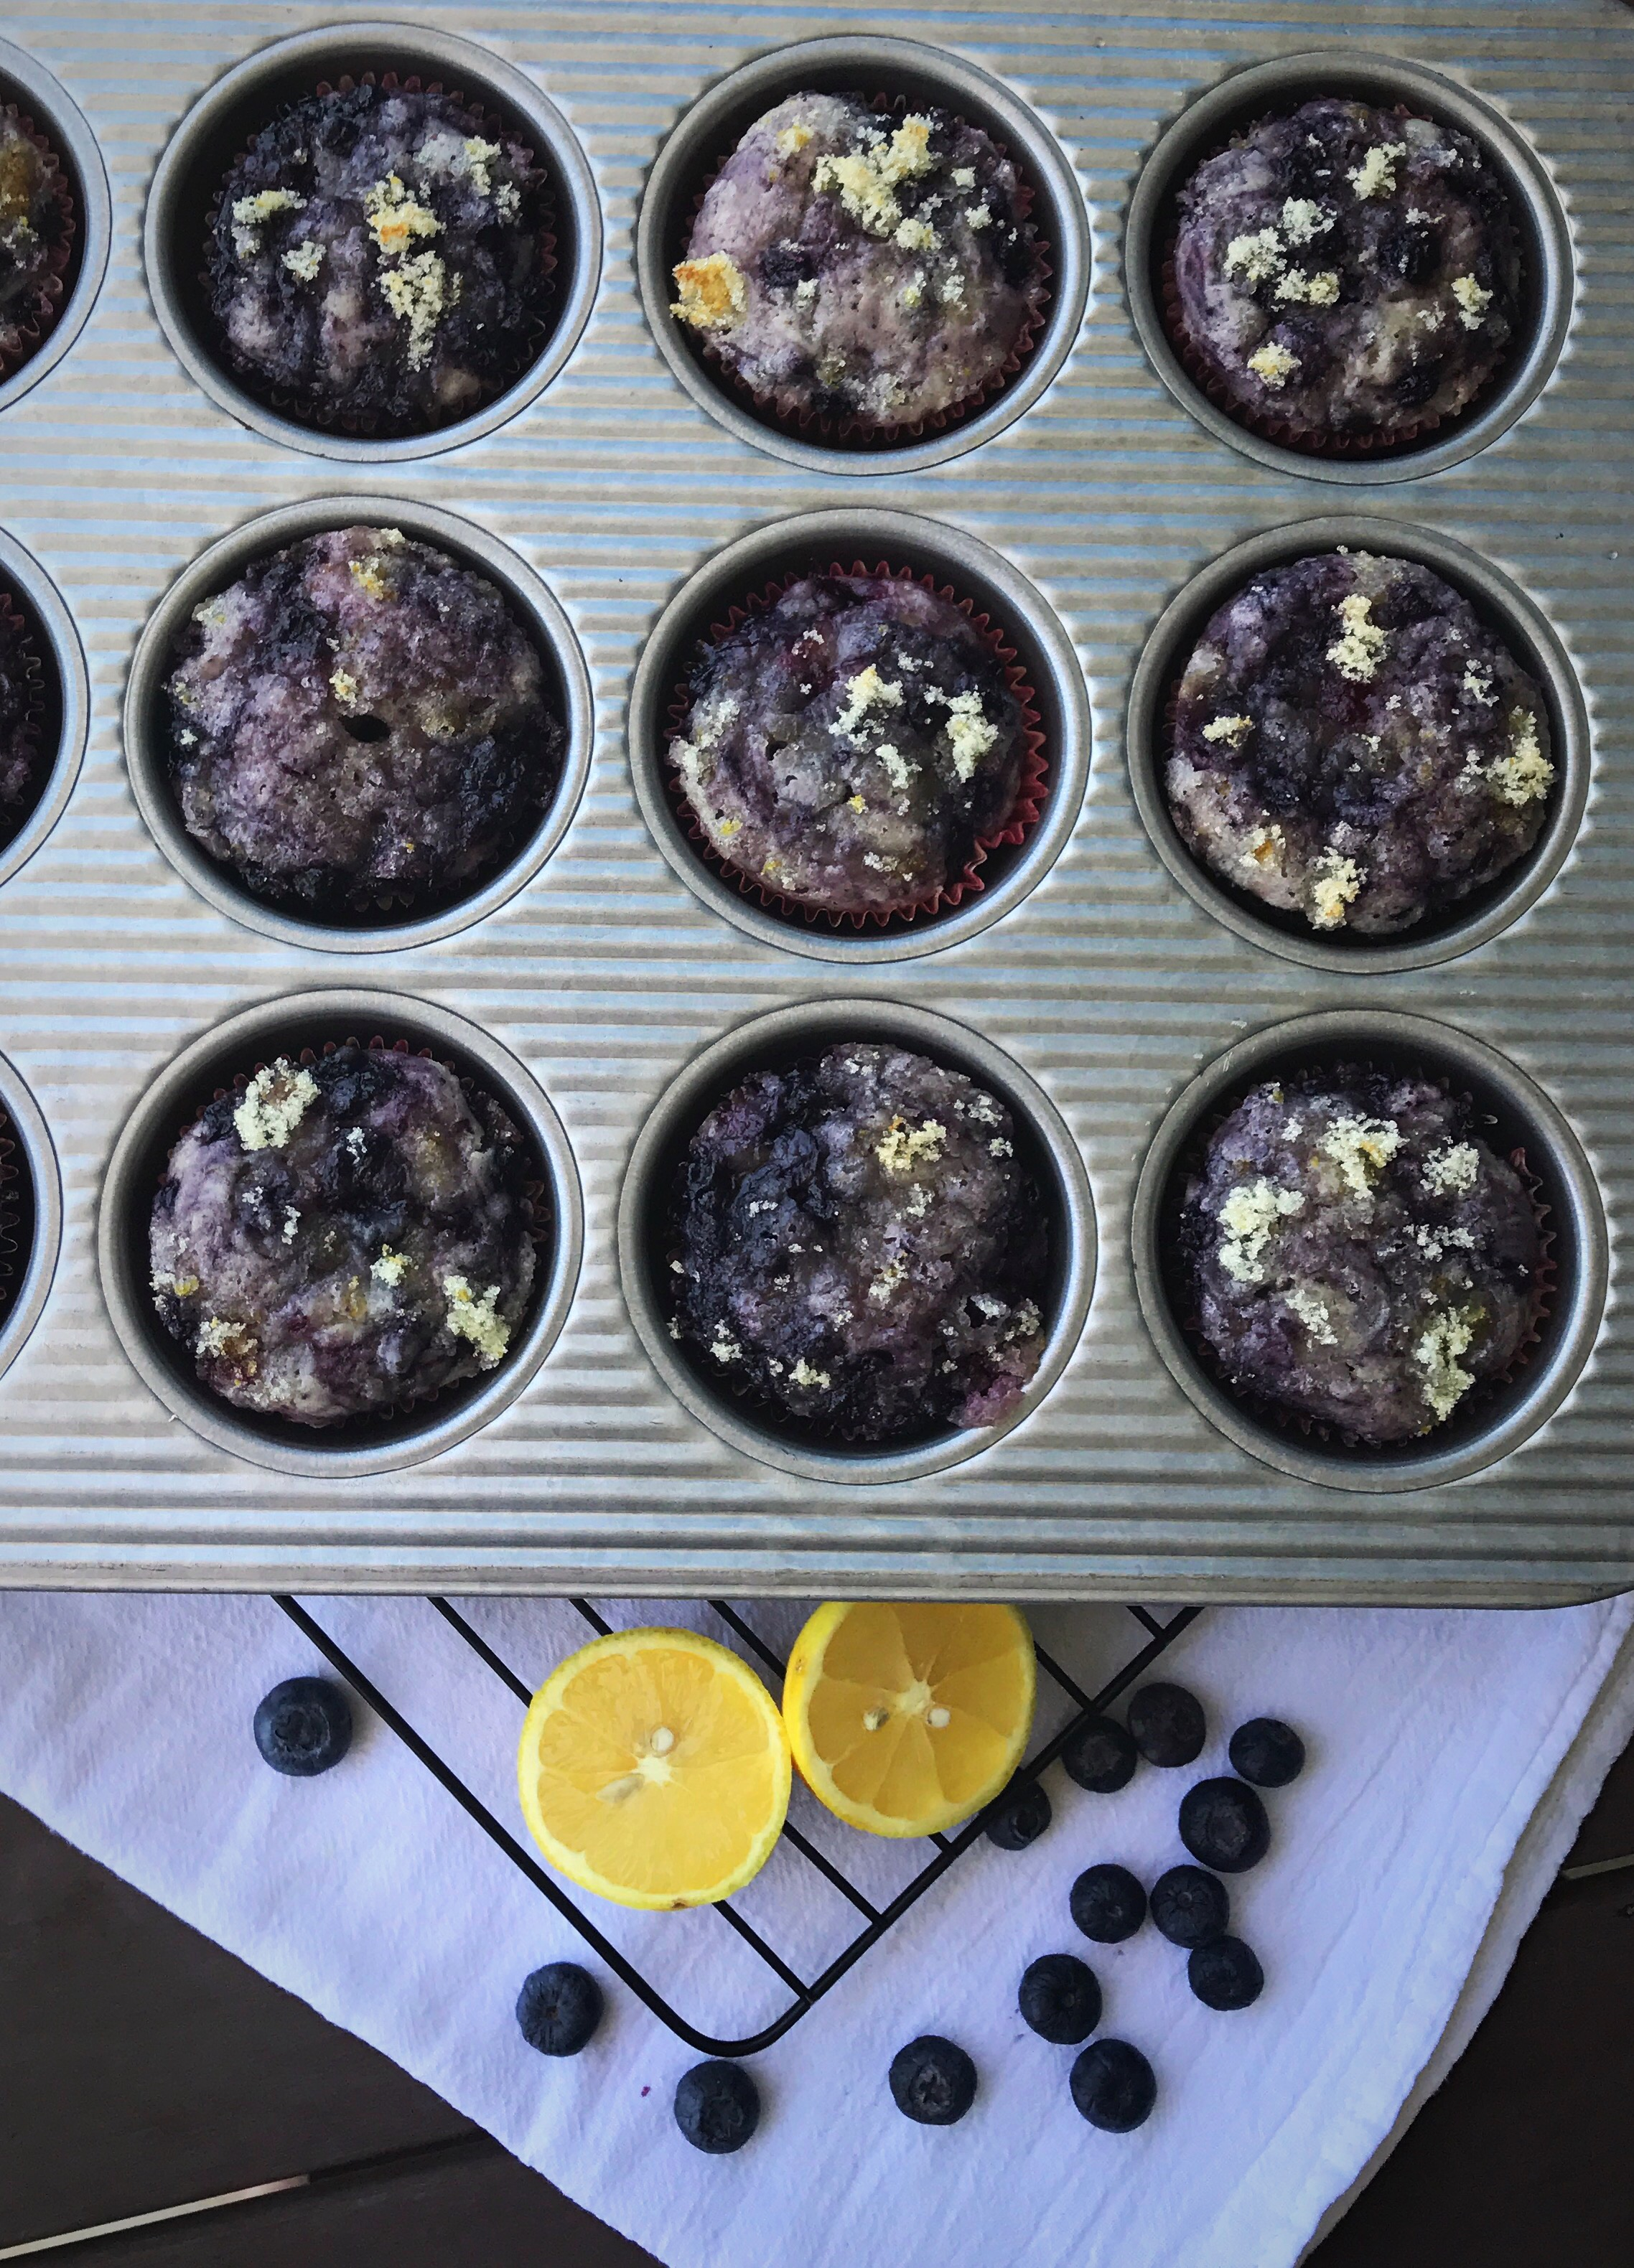 lemon-blueberry muffins2